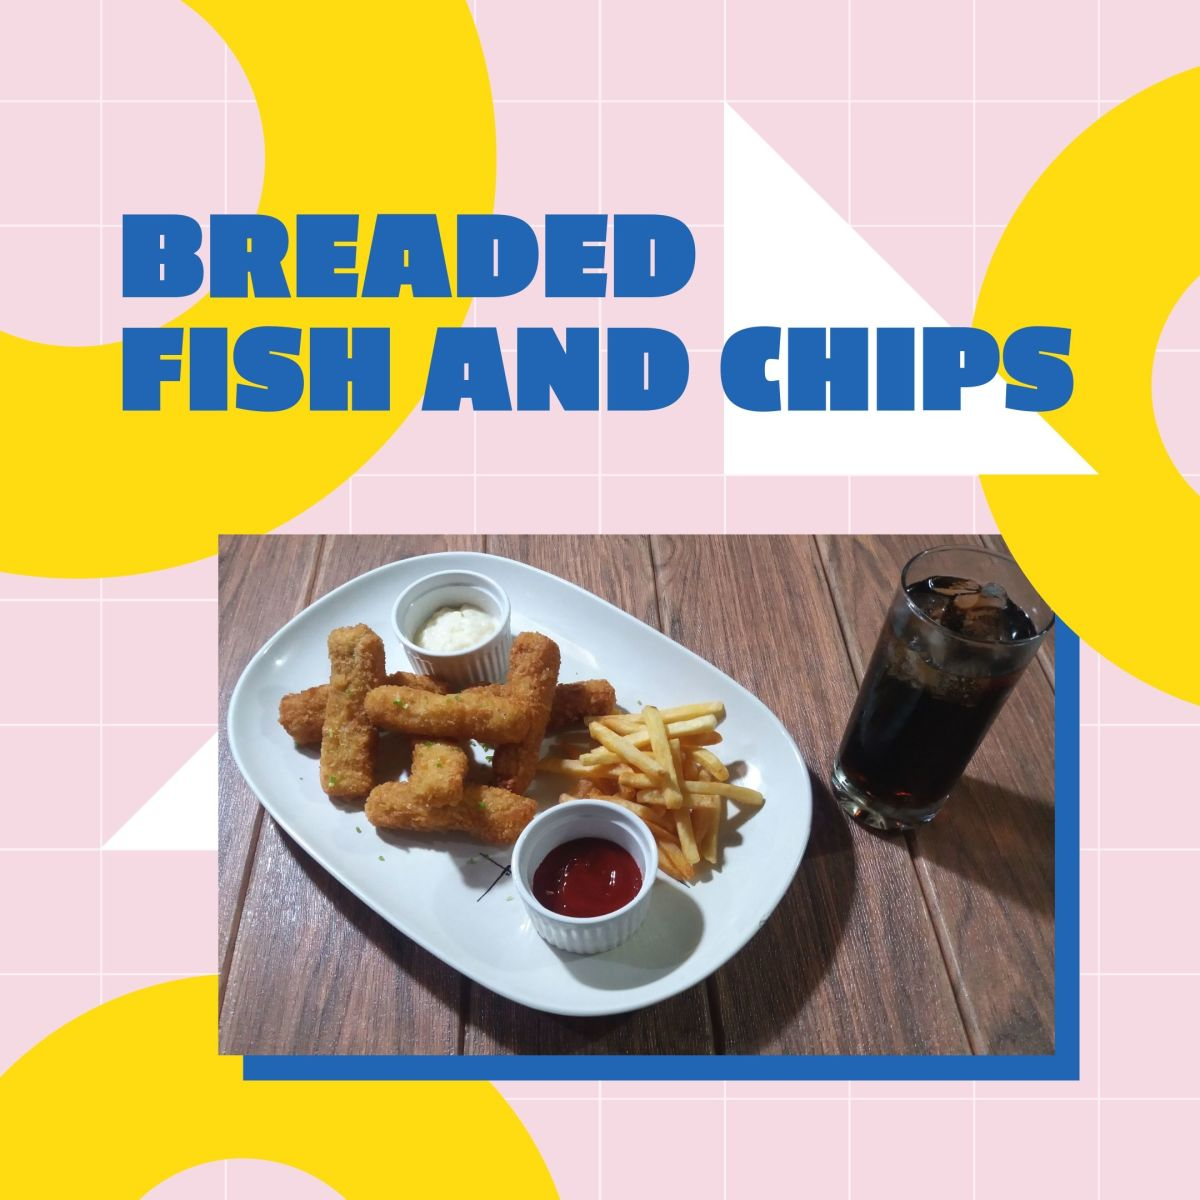 Learn how to cook breaded fish and chips